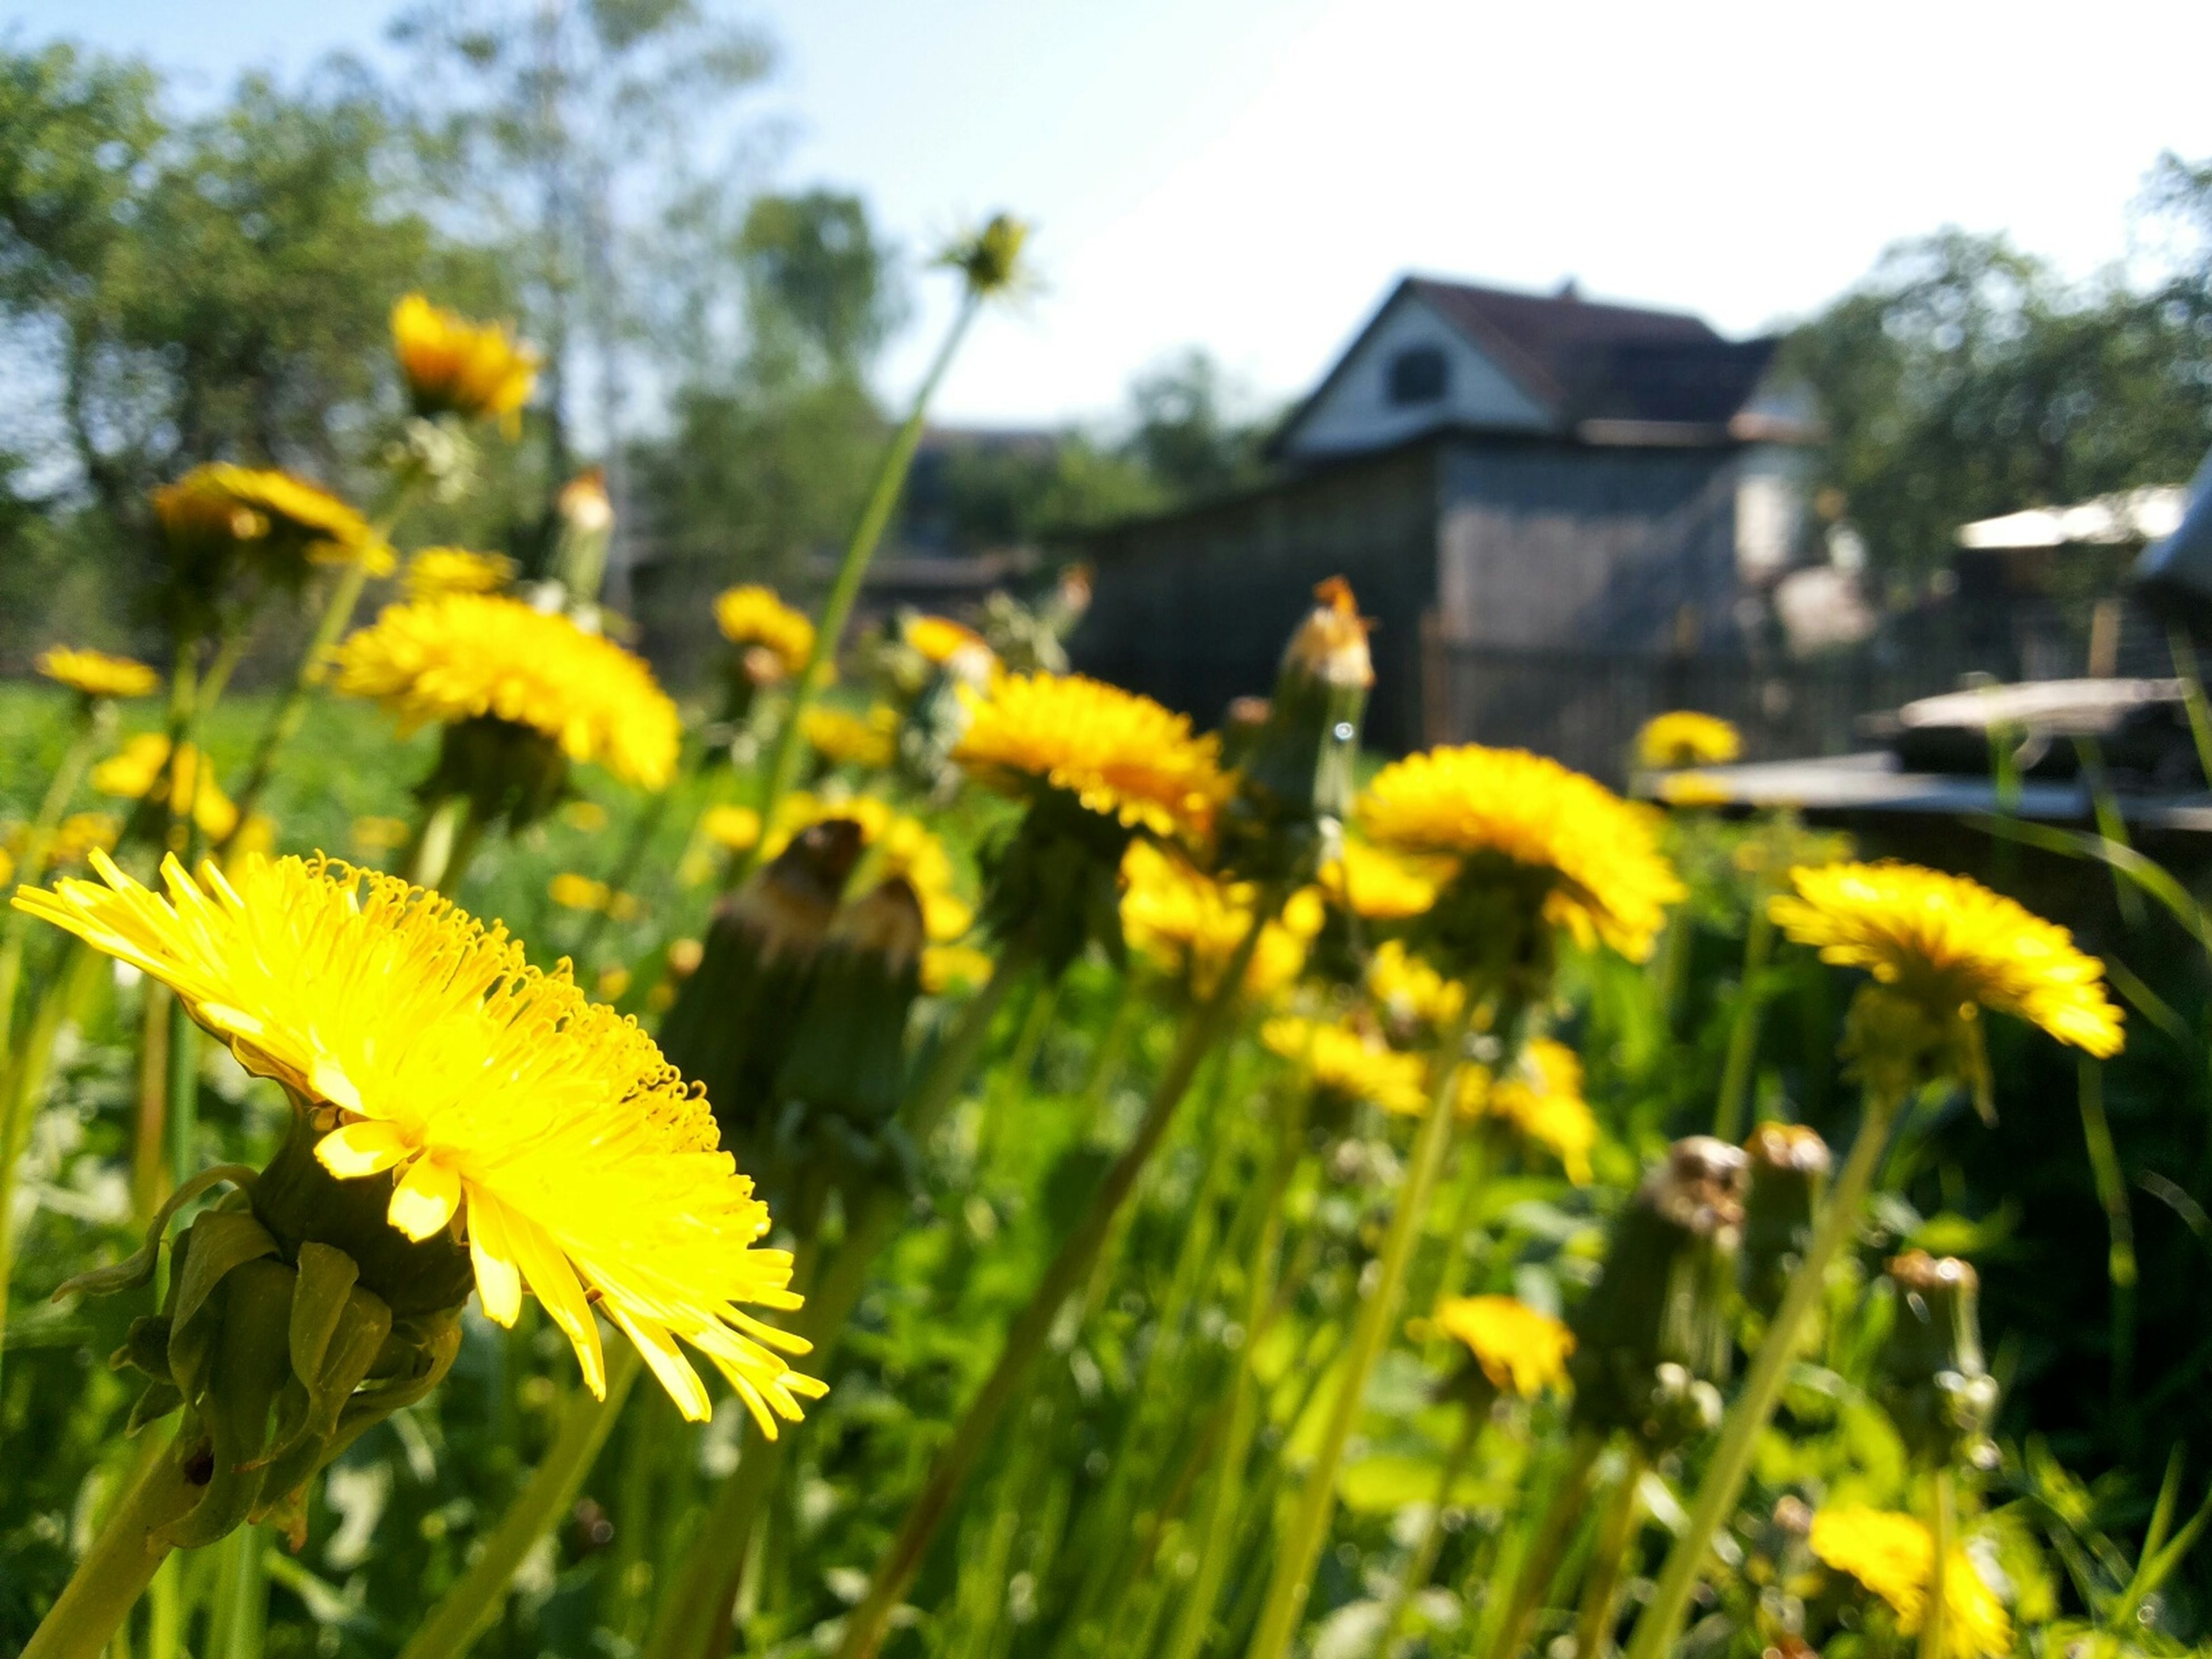 flower, yellow, focus on foreground, freshness, growth, fragility, close-up, beauty in nature, petal, field, nature, plant, selective focus, blooming, flower head, day, outdoors, building exterior, in bloom, stem